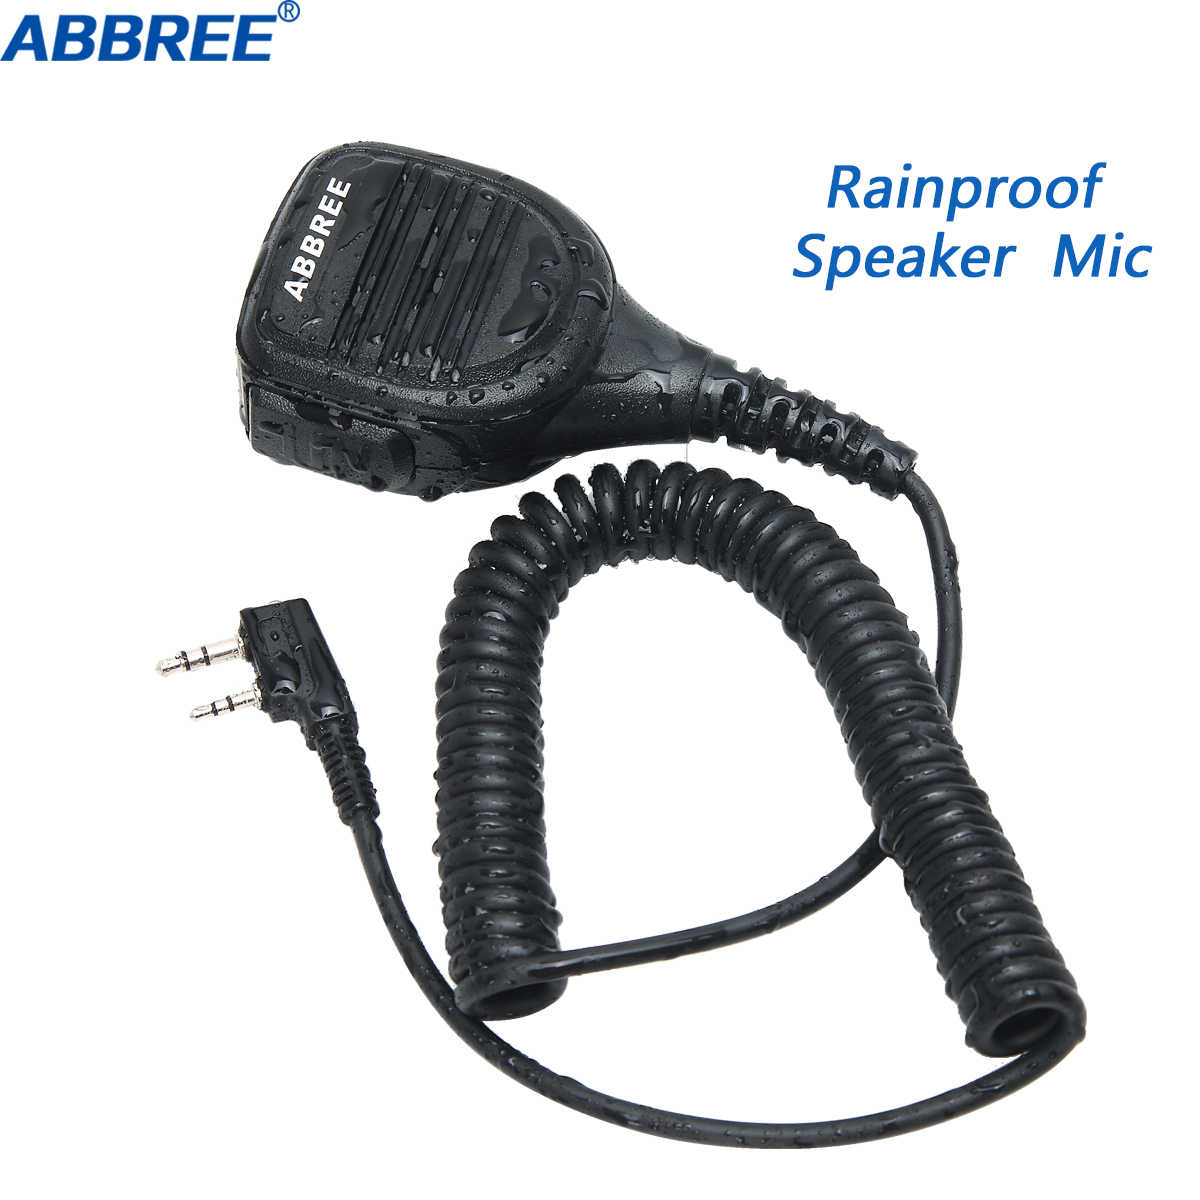 ABBREE AR-760 Radio Lautsprecher Mic Mikrofon PTT für Portable Two Way Radio Walkie Talkie Baofeng UV-5R UV-82 BF-888S UV-S9